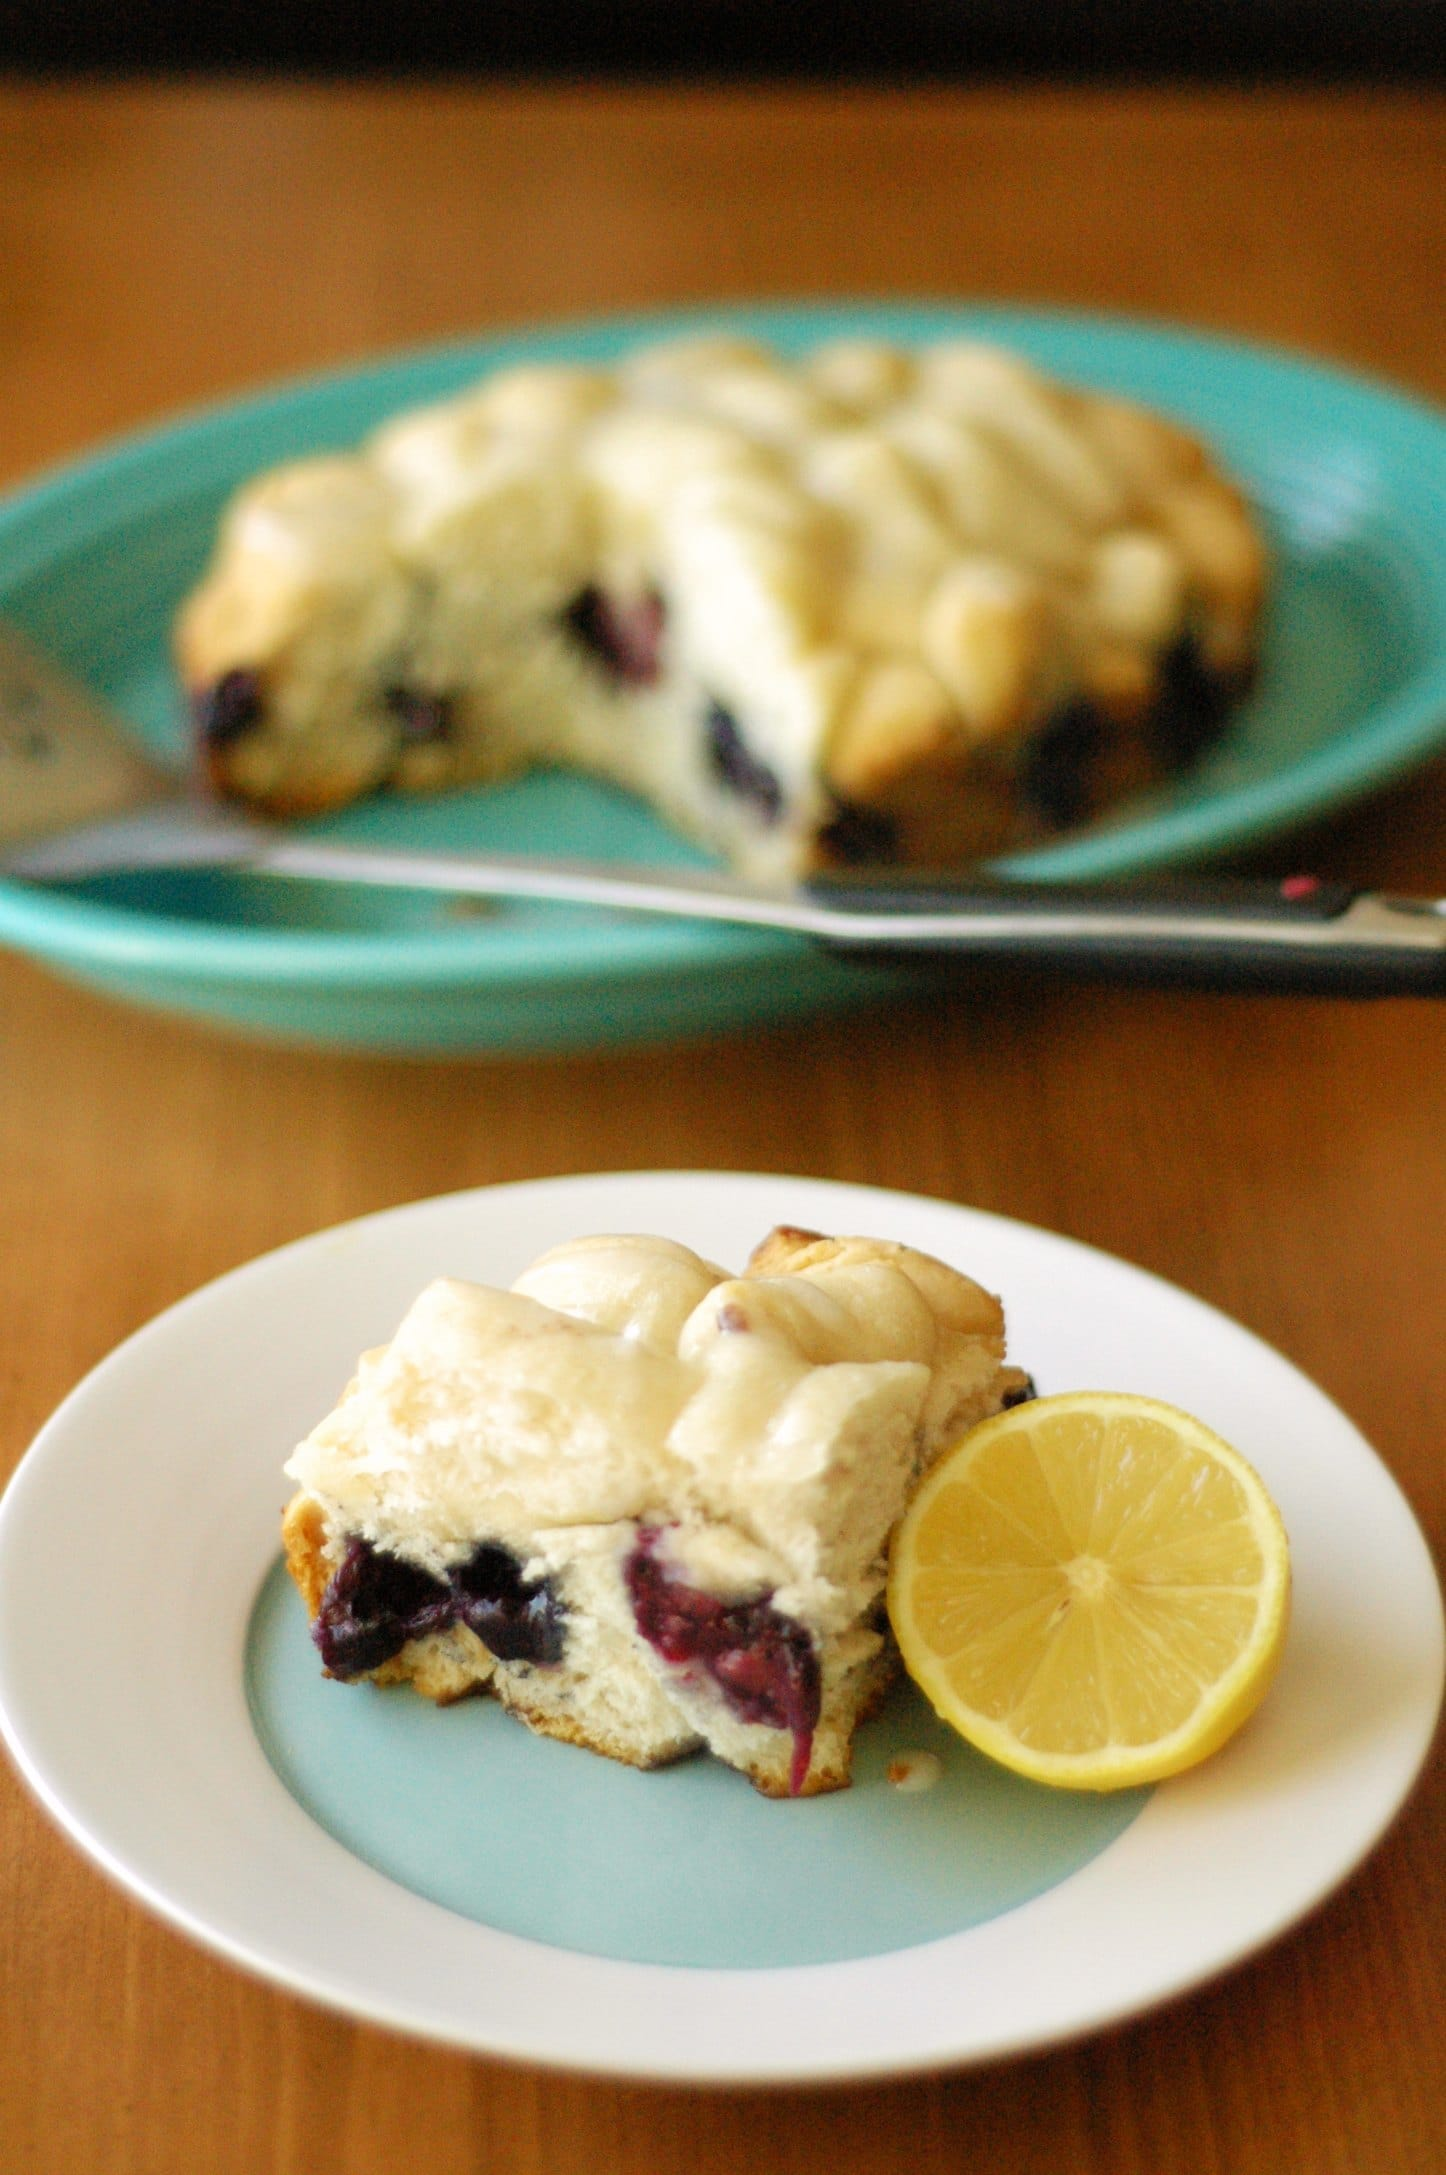 Slow Cooker Blueberry Breakfast Cake with Lemon Drizzle Icing